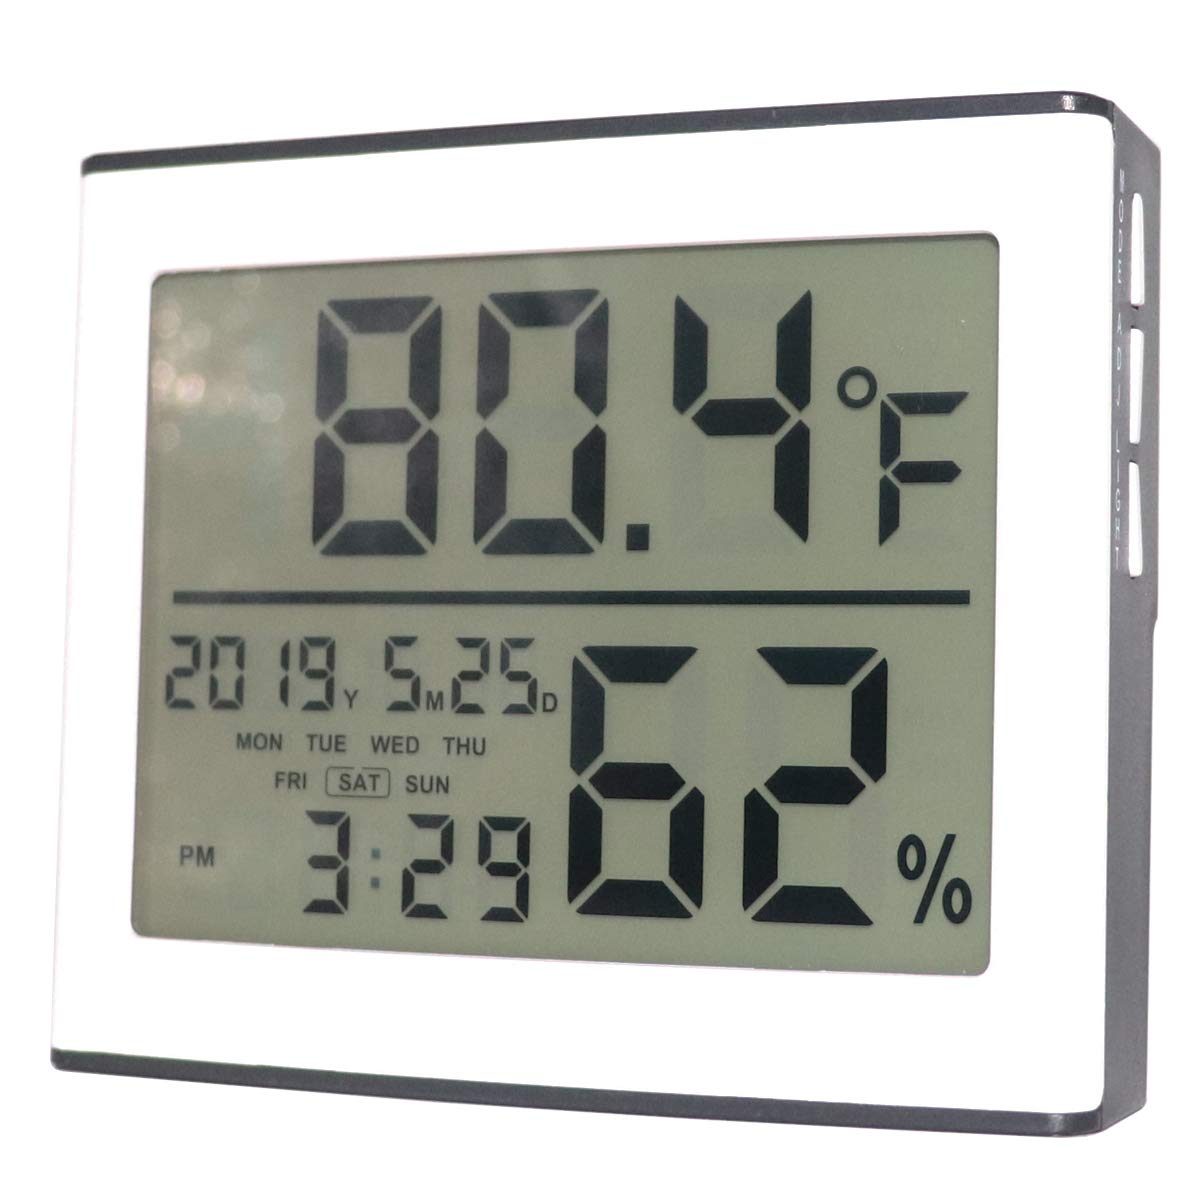 Hguangs Thermometer Hygrometer Digital Temperature Humidity Meter Indoor Hygrometer Thermometer with Clock Calendar Alarm Backlight